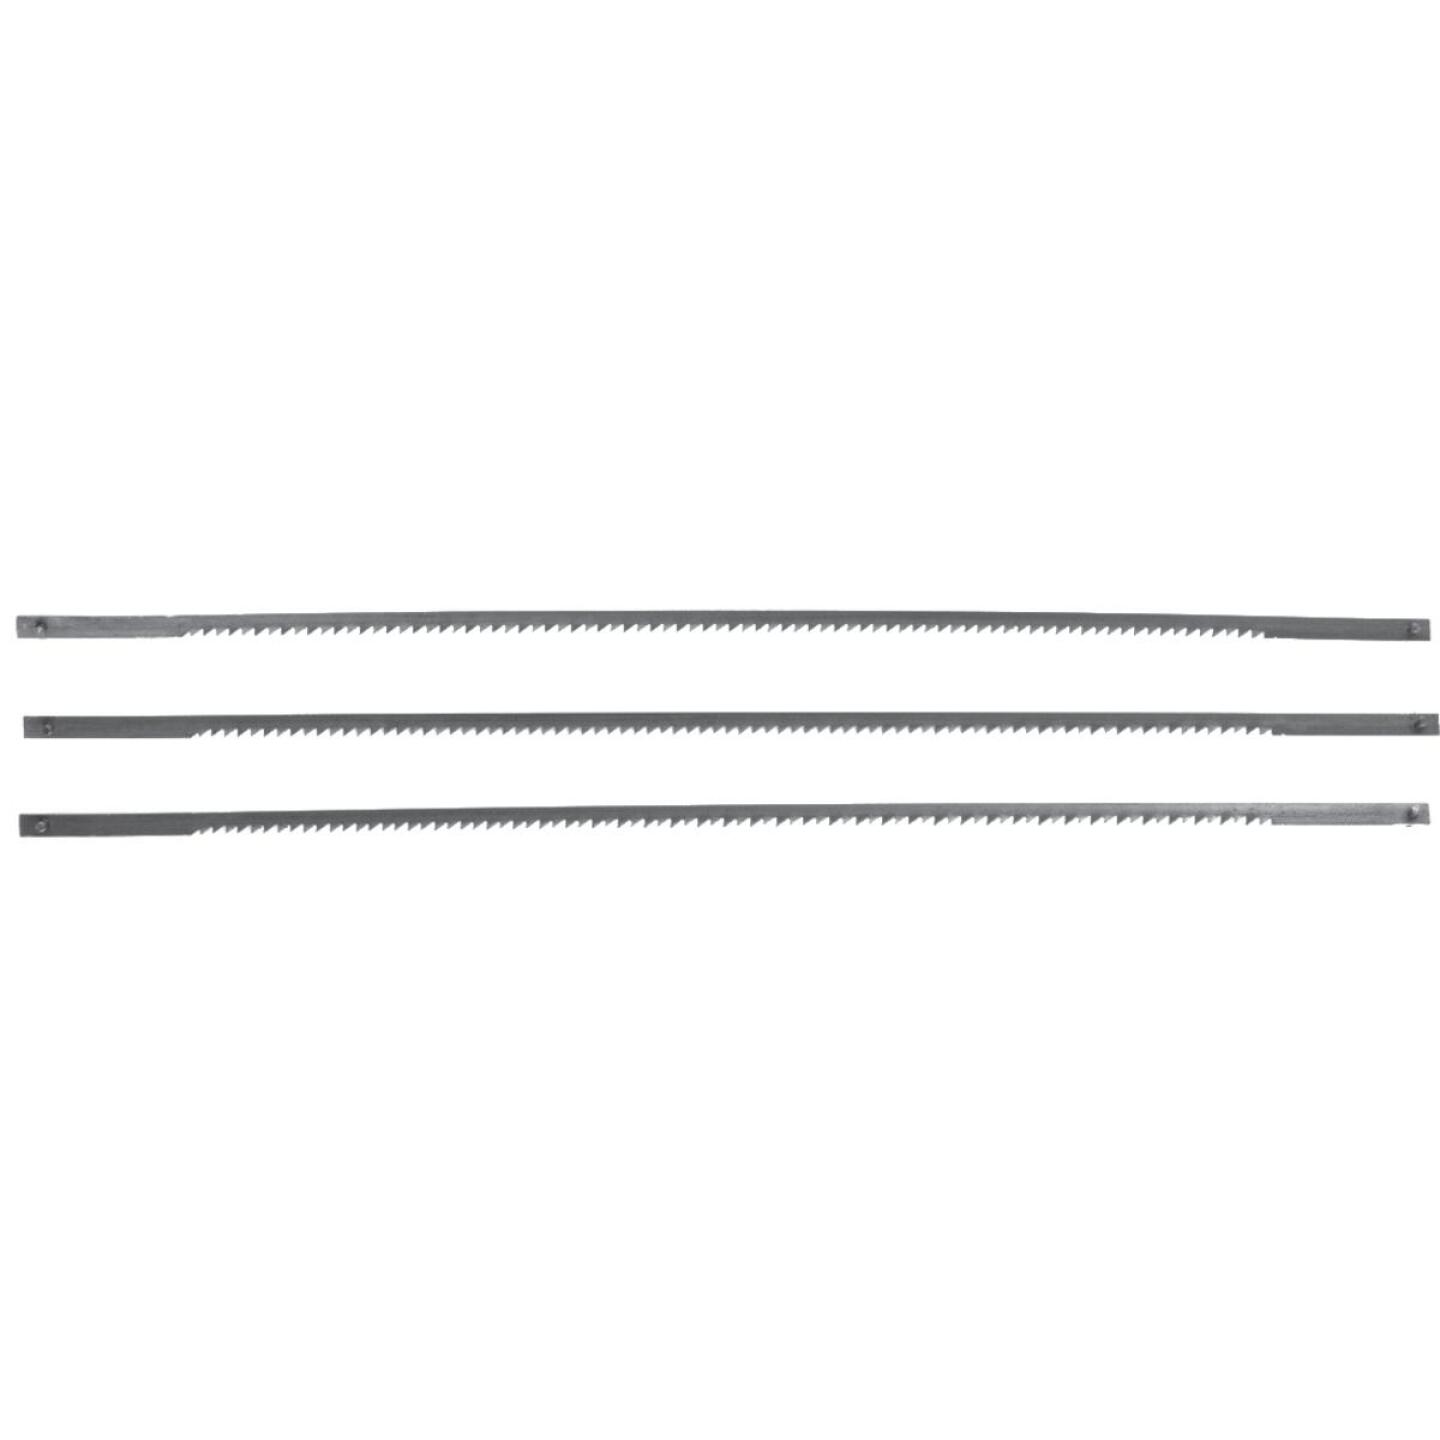 Irwin 6-1/2 In. 17 TPI Coping Saw Blade (3-Pack) Image 1